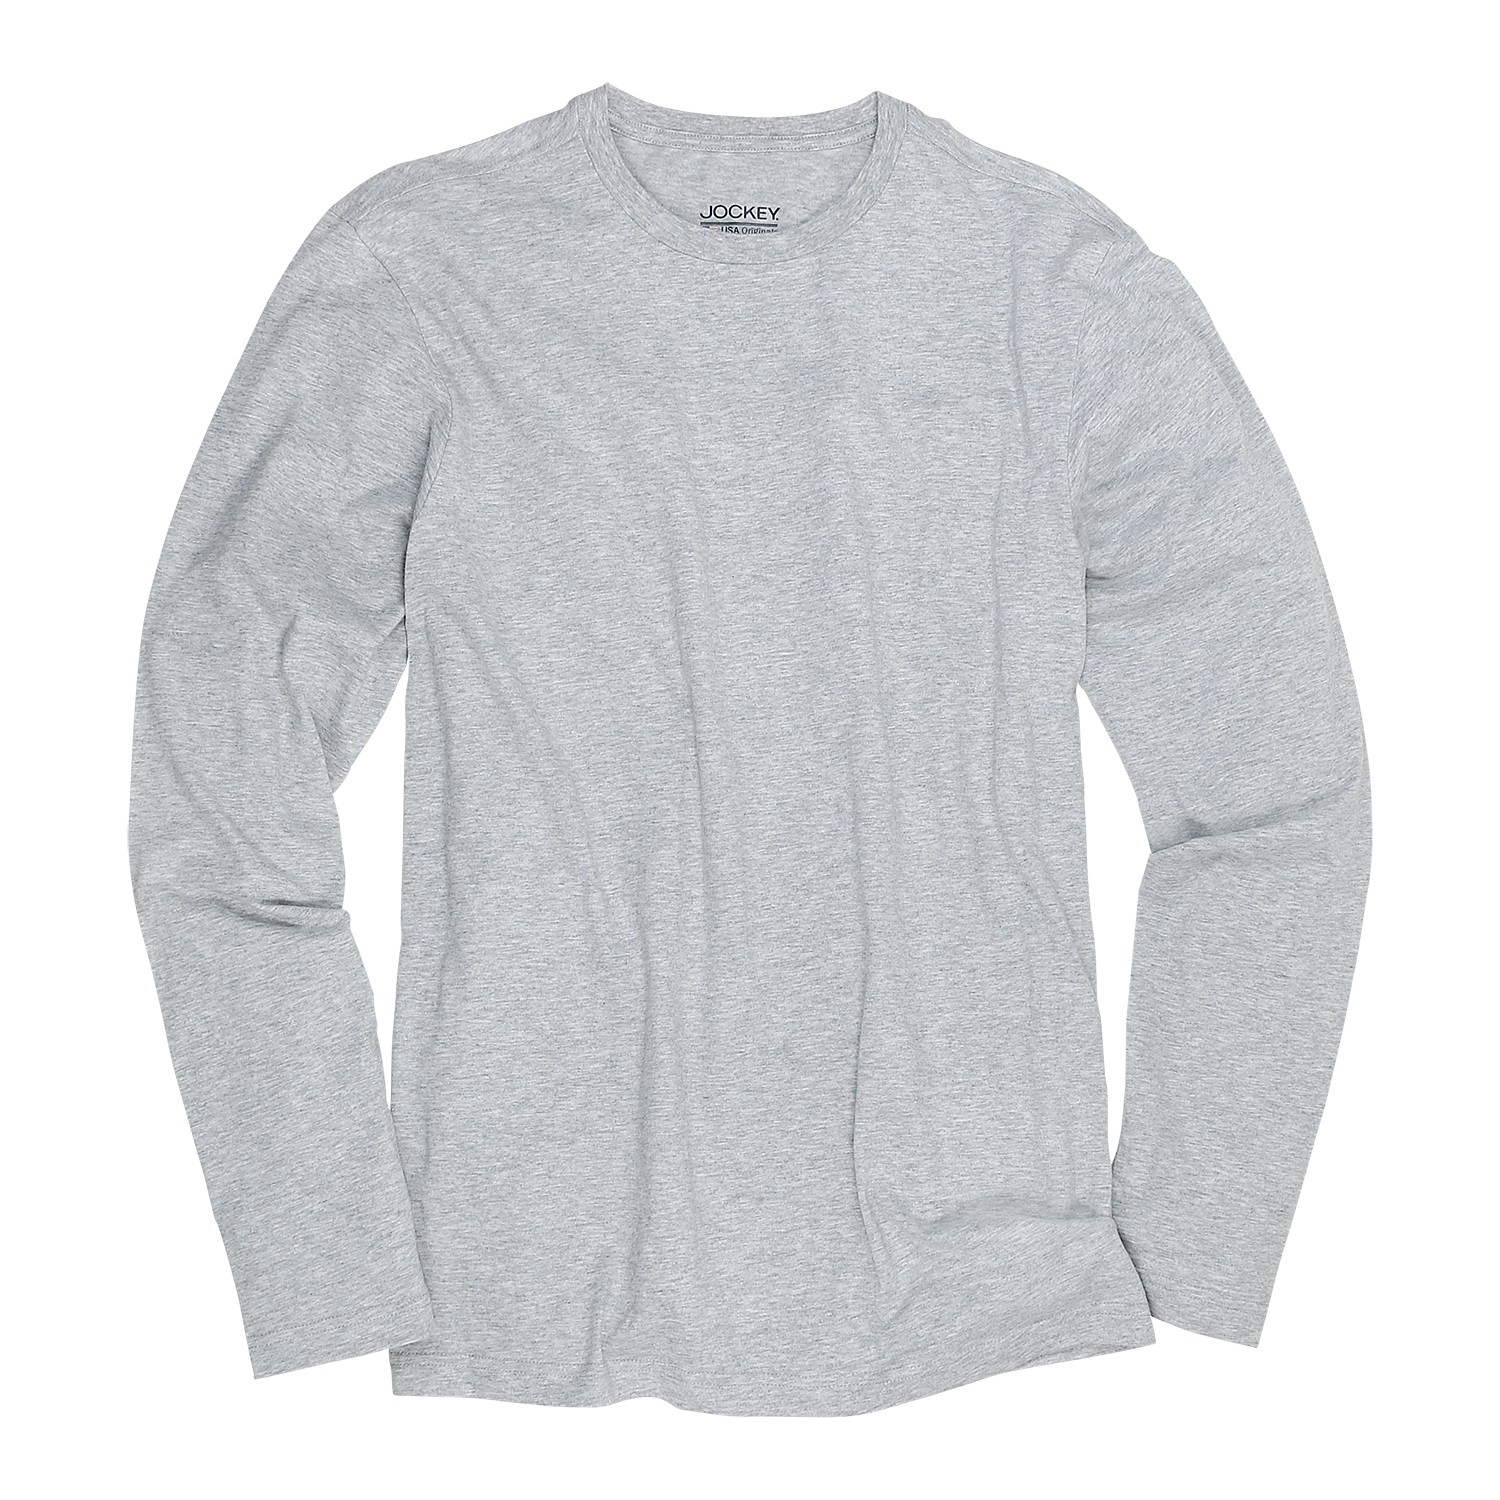 Detail Image to Long Sleeve from Jockey grey, in oversize until 6XL